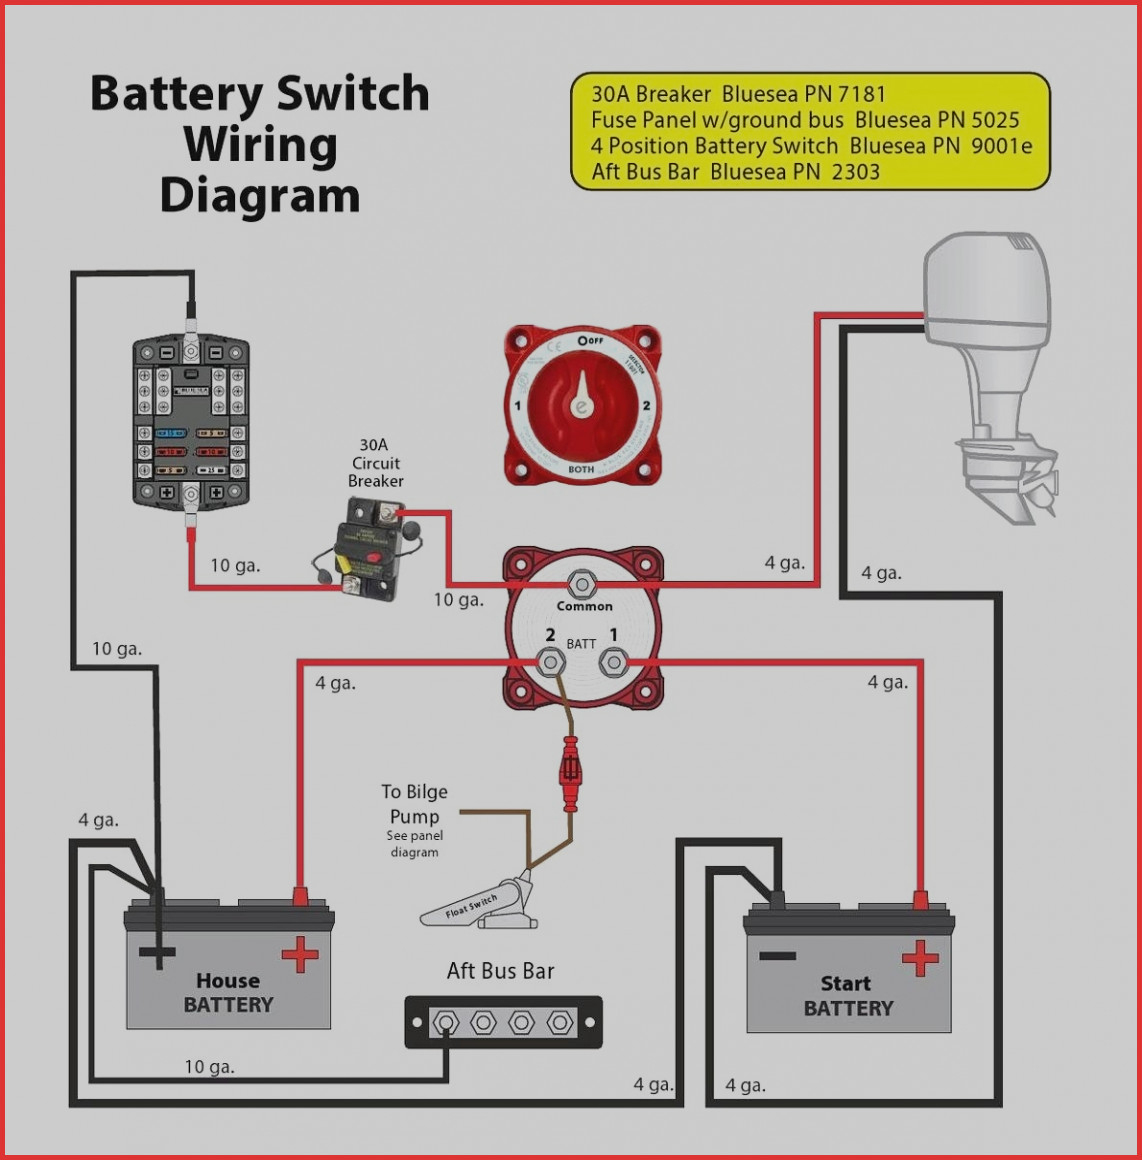 Quest Battery Isolator Wiring Diagram | Manual E-Books - 12V Battery Isolator Wiring Diagram